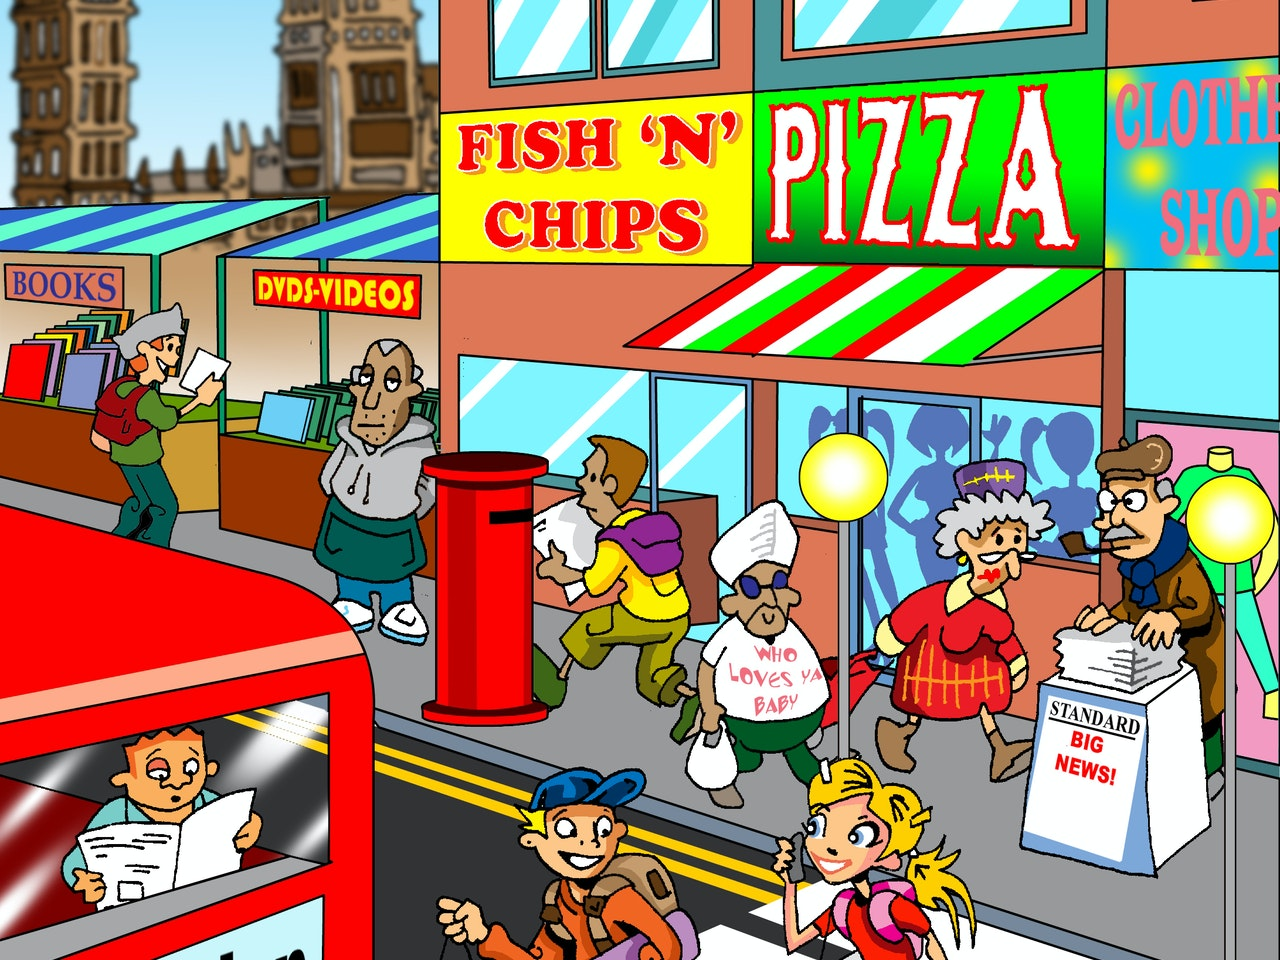 Book cover illustration animation  humorous comical colourful graphic cartoon anime educational publishing red double decker bus fish and chips pizza restaurant big ben house of commons england english red post box  shopping